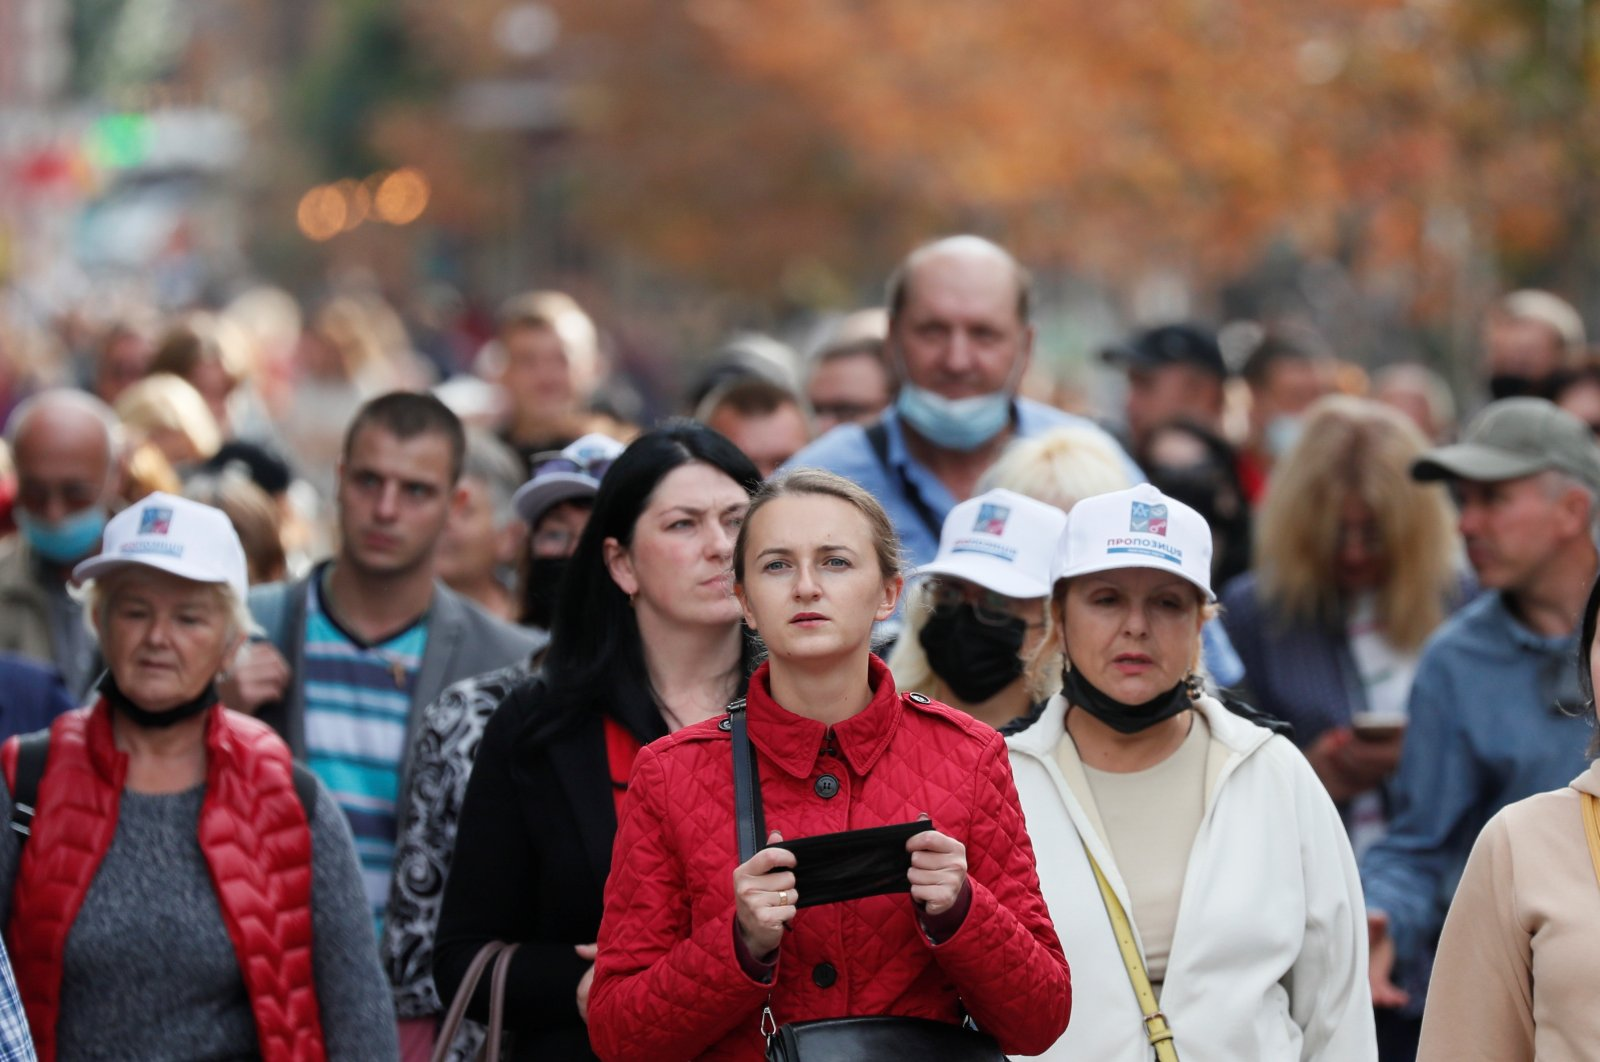 People, including a woman holding a protective face mask amid the outbreak of COVID-19, walk in central Kyiv, Ukraine, Sept. 28, 2020. (REUTERS Photo)